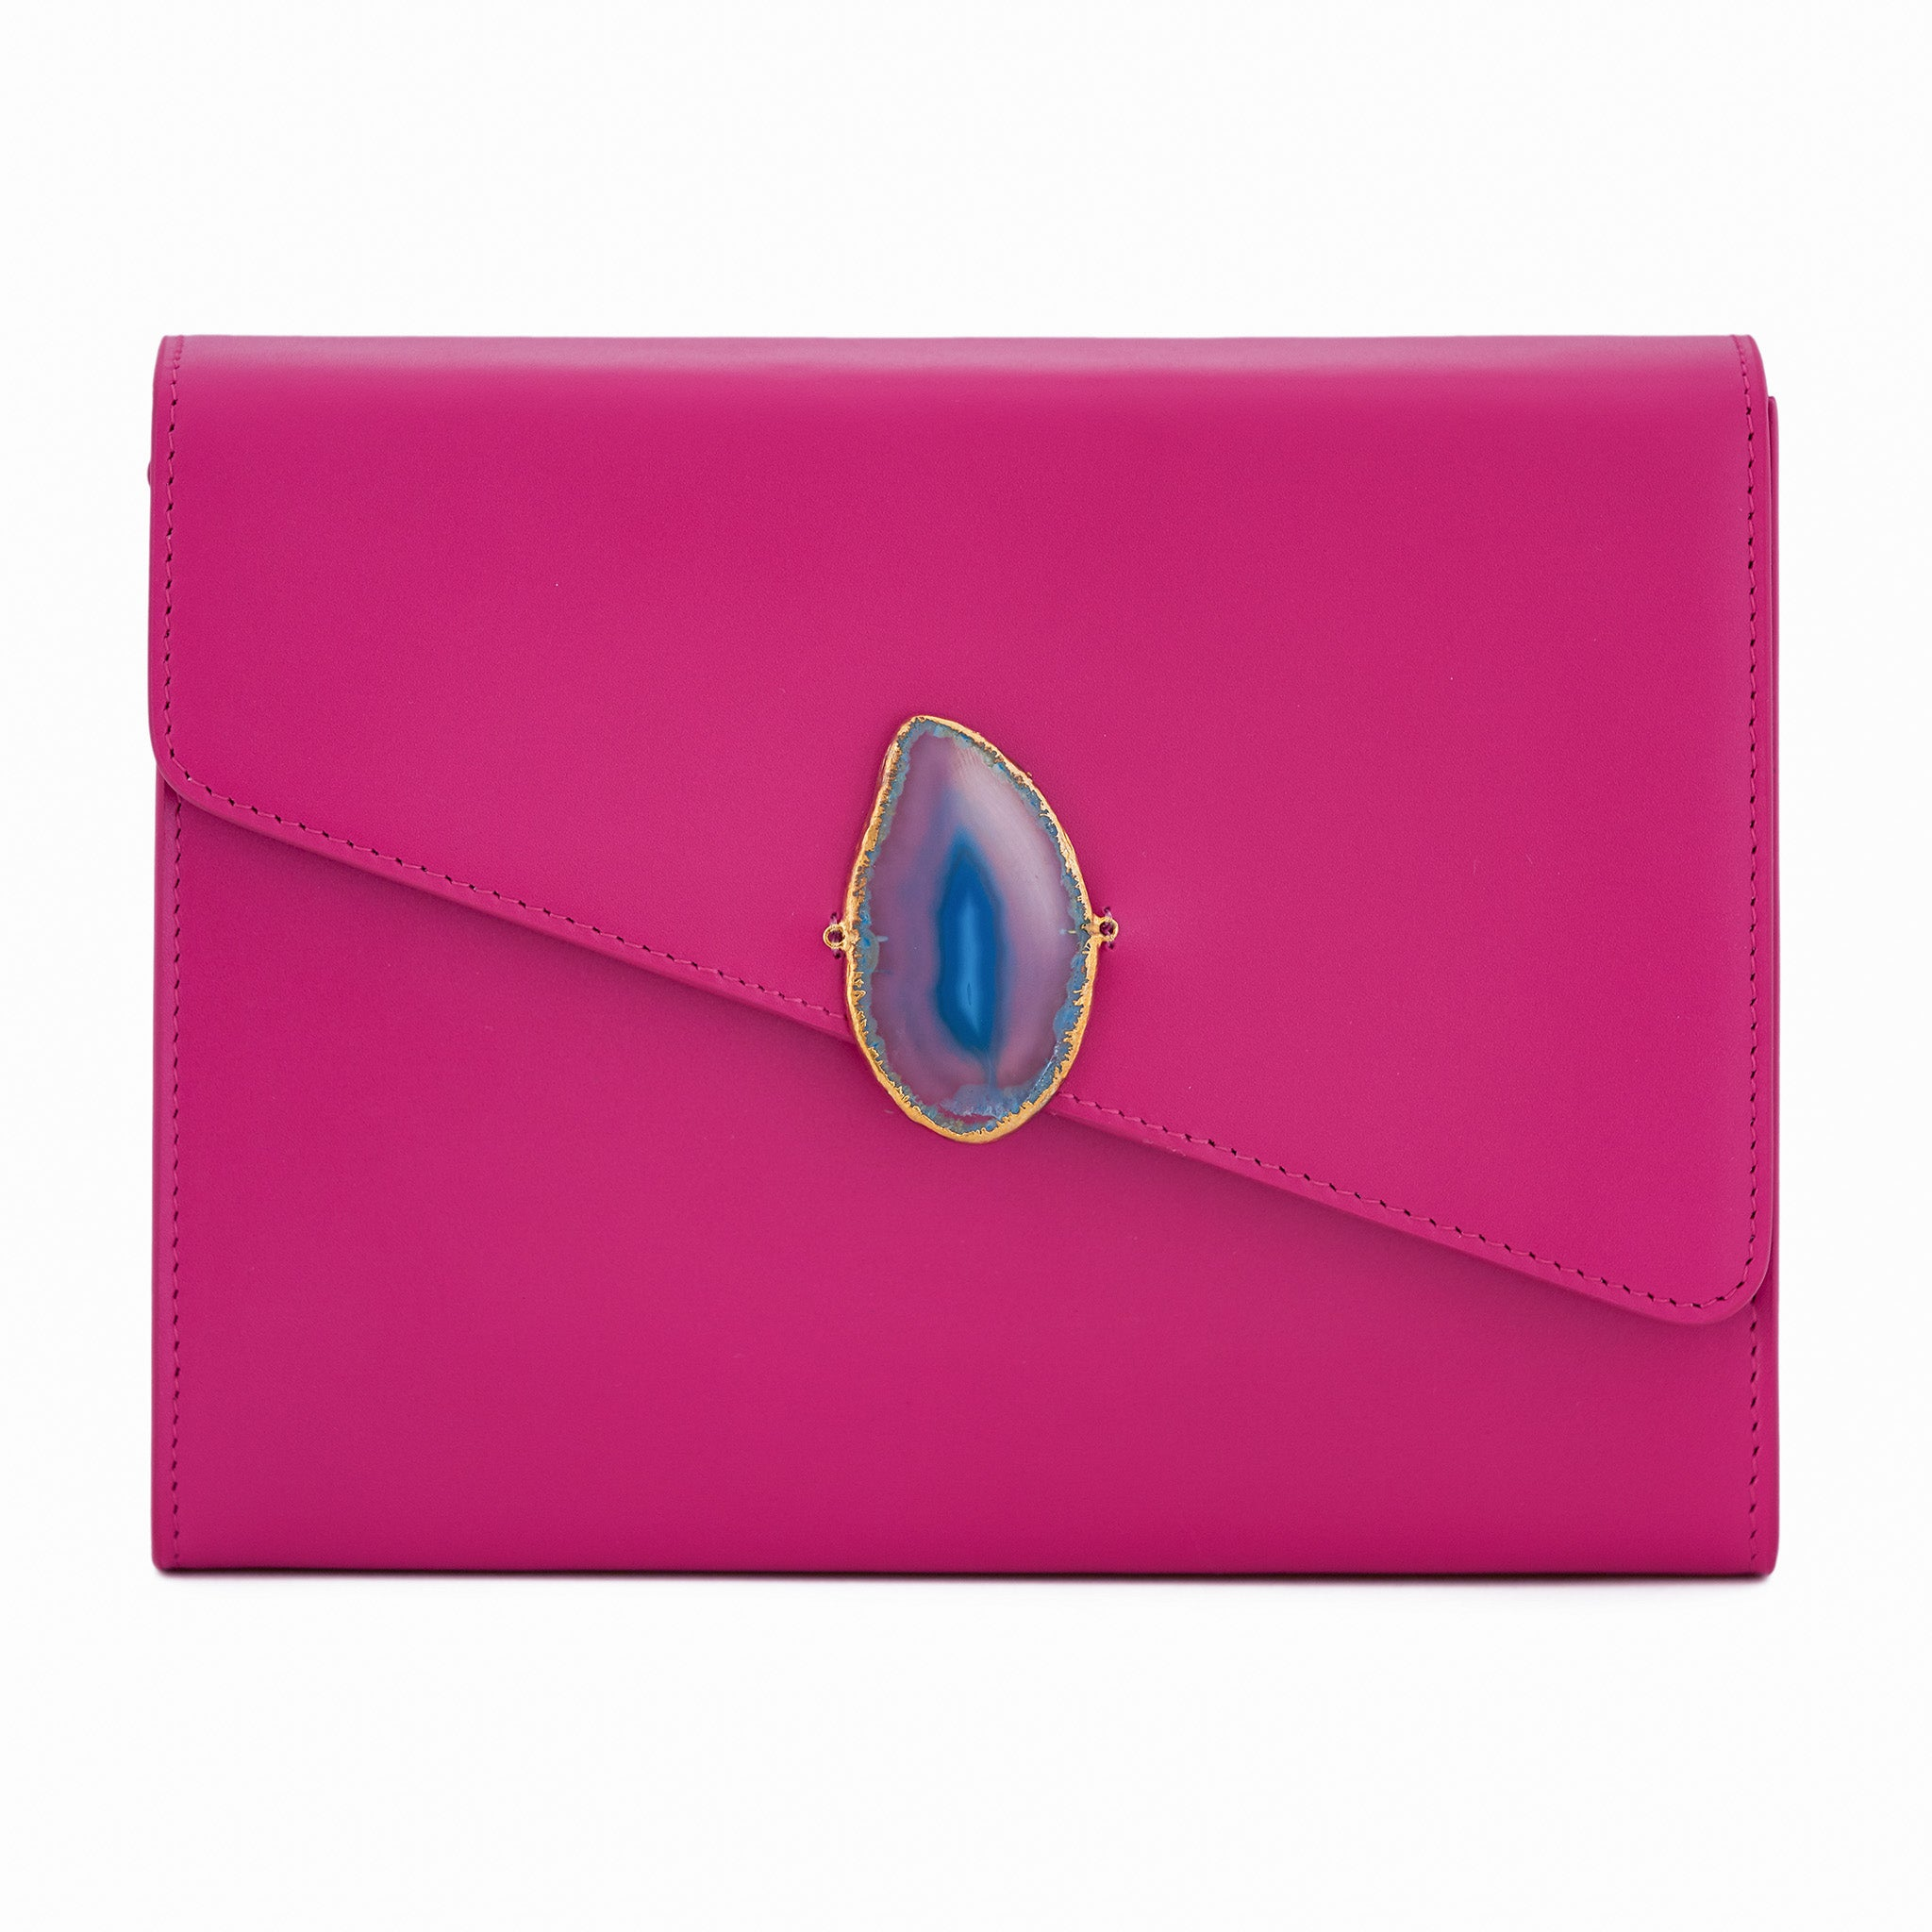 Loved Bag - Pink Ruby Leather with Blue Agate